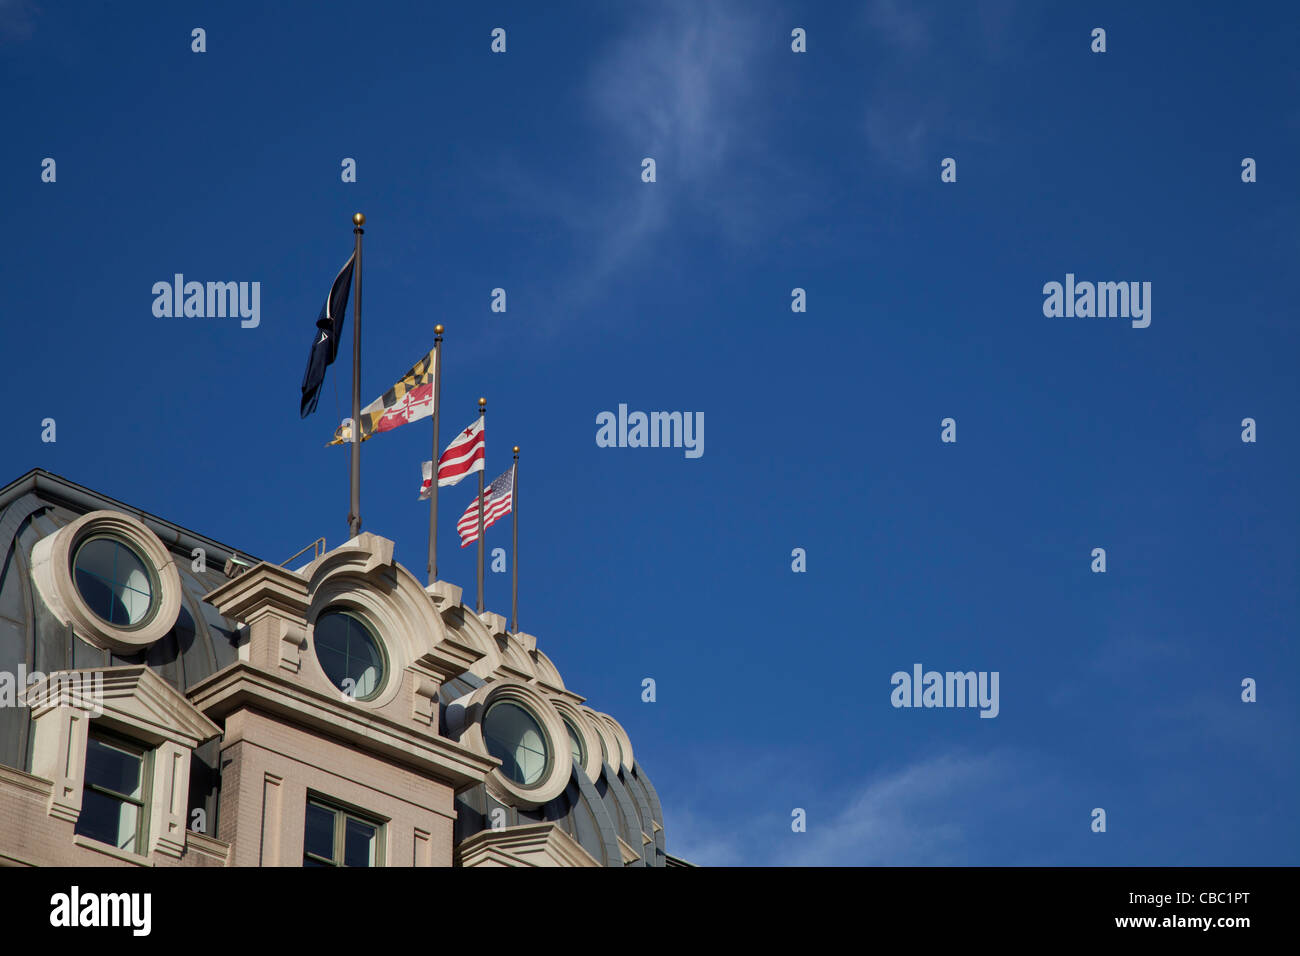 Washington, DC - Flags atop the Willard InterContinental Hotel, a luxury hotel around the corner from the White - Stock Image